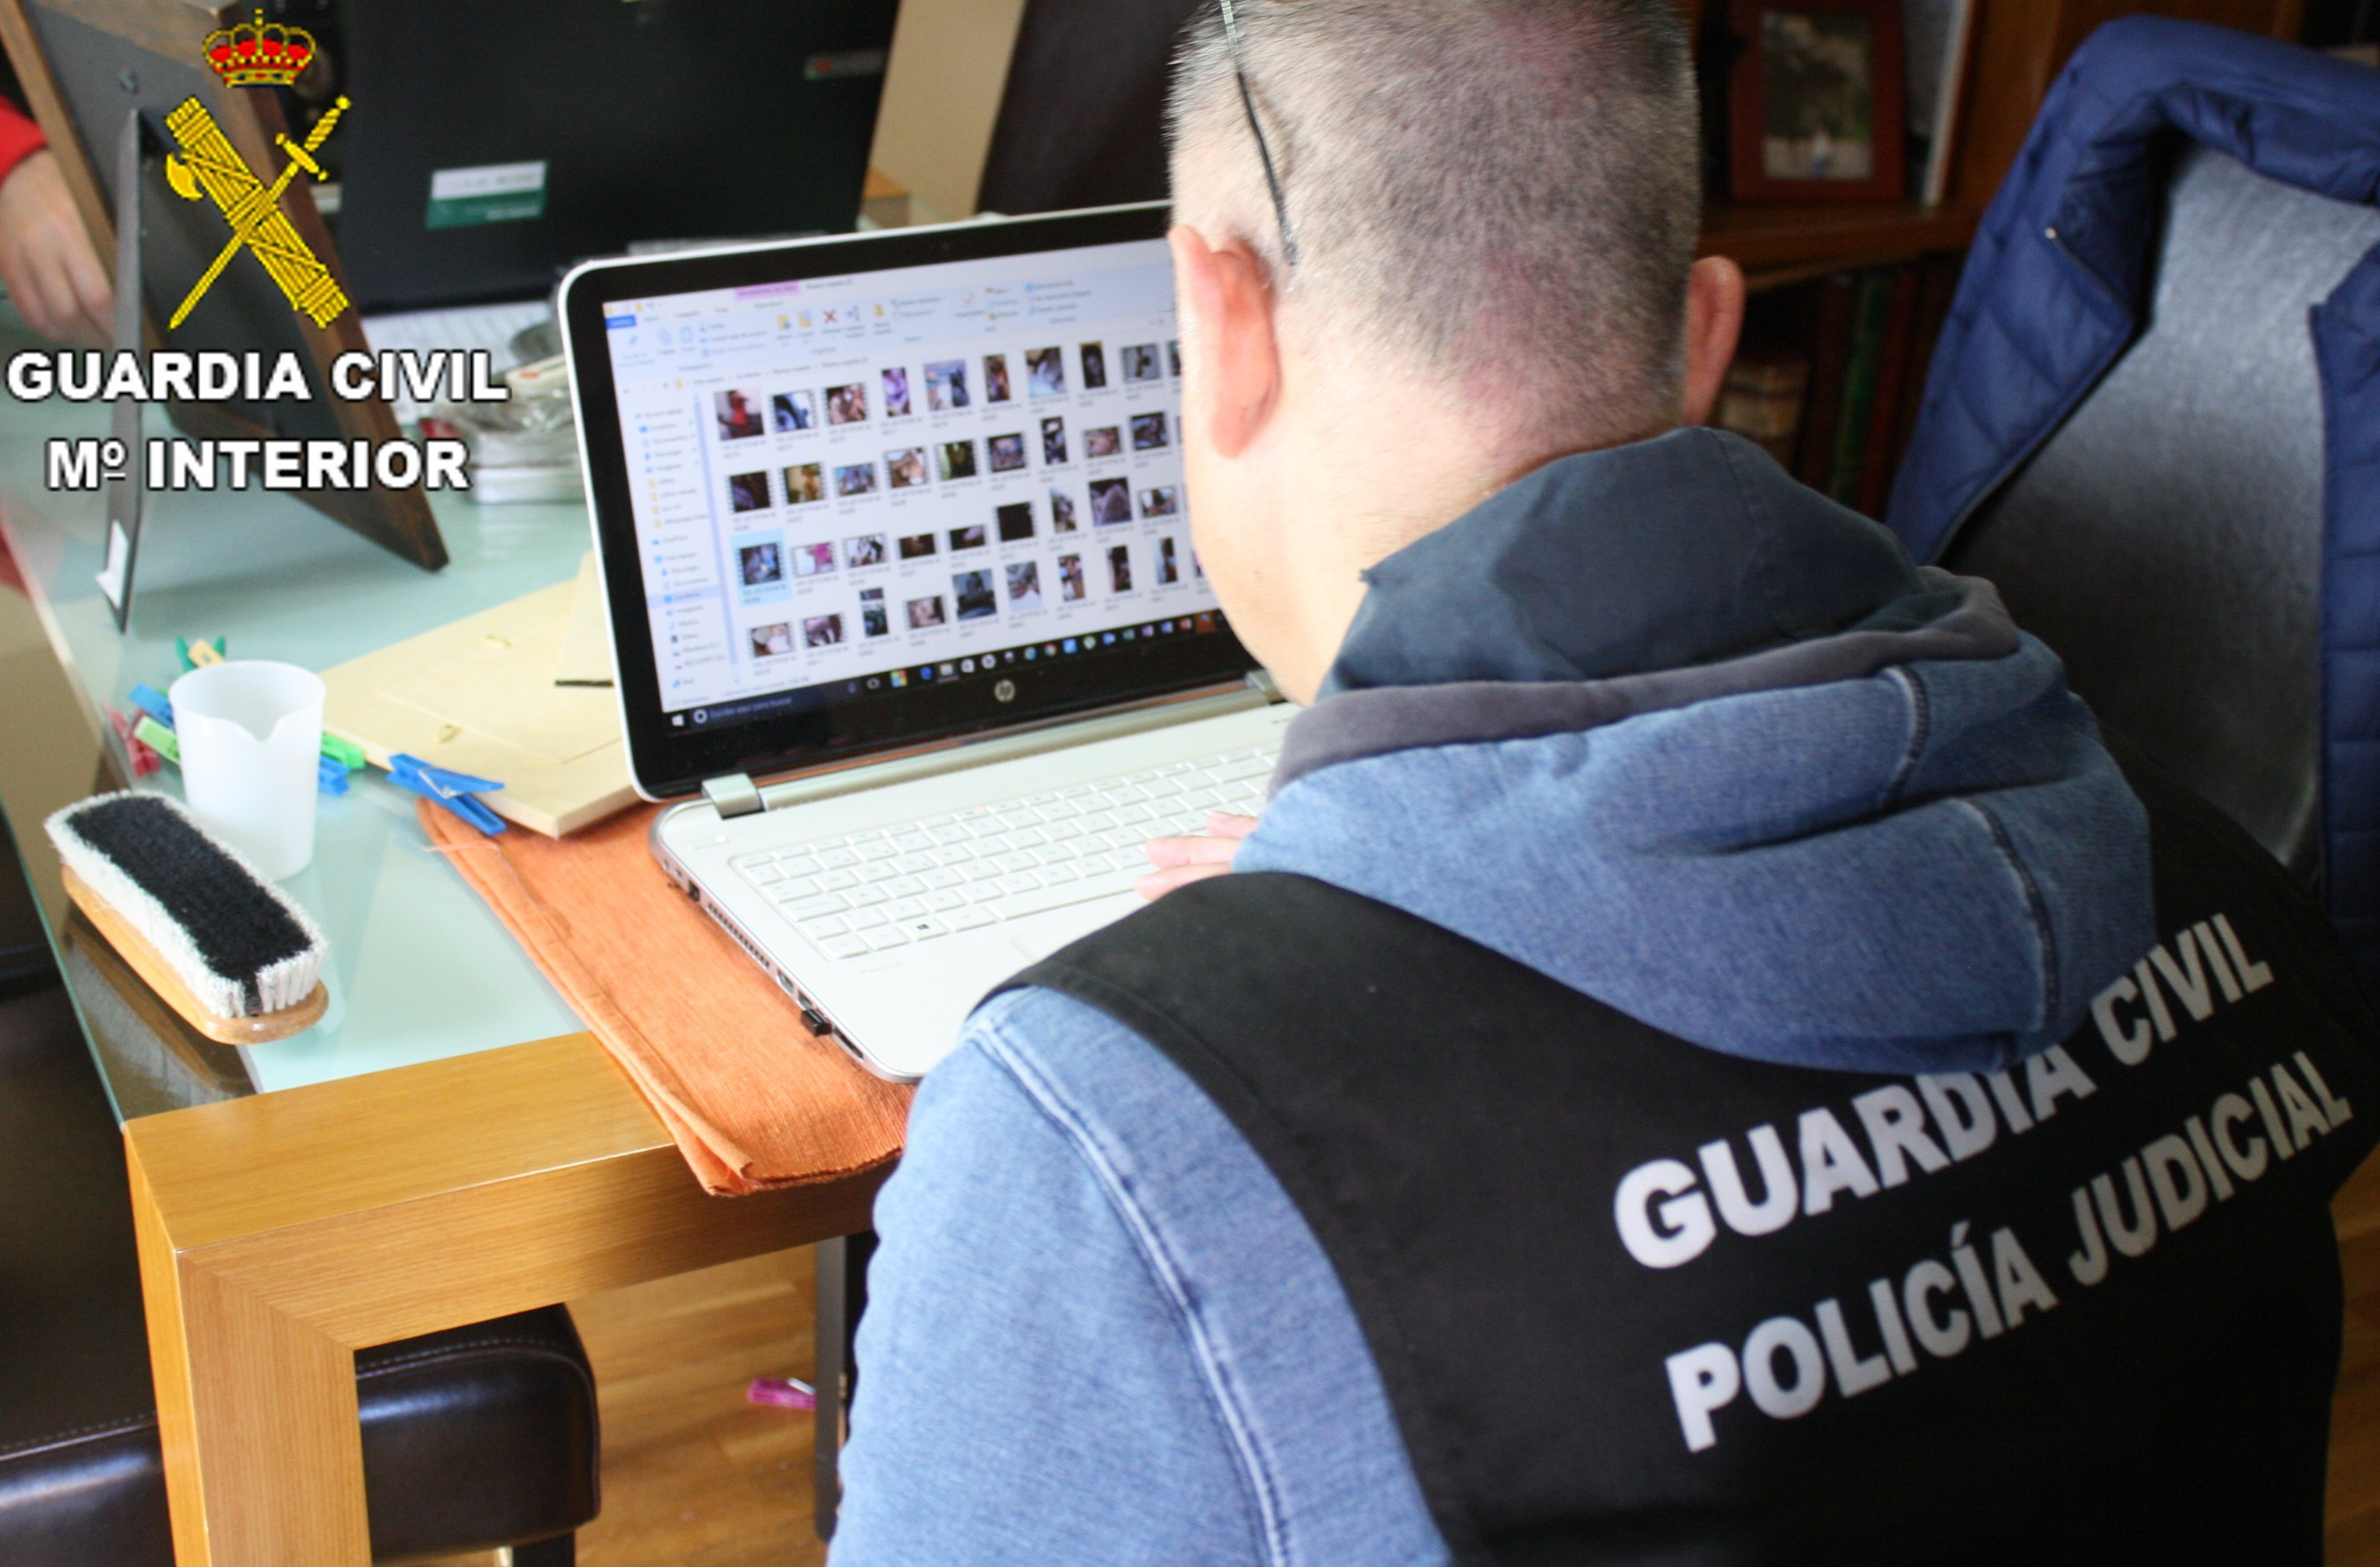 La Guardia Civil de Tavernes destapa una red de pornografía infantil